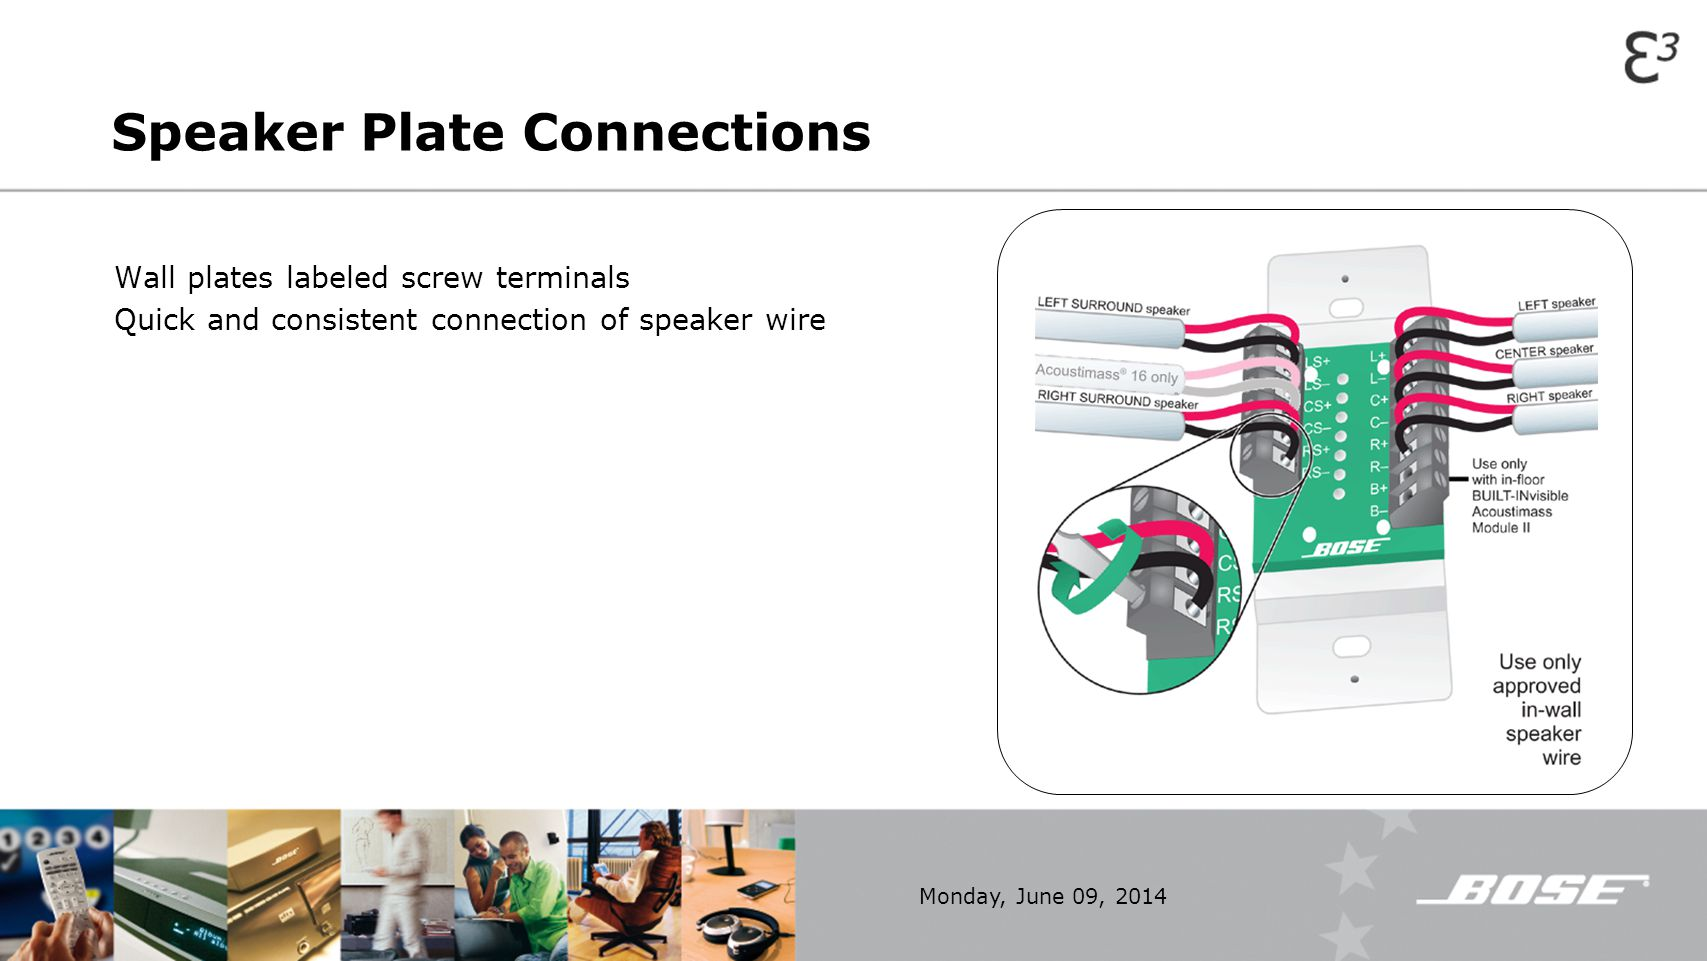 Wiring Speaker Wall Plate Bose Link Music Throughout Your Home Ppt Video Online Download Connections